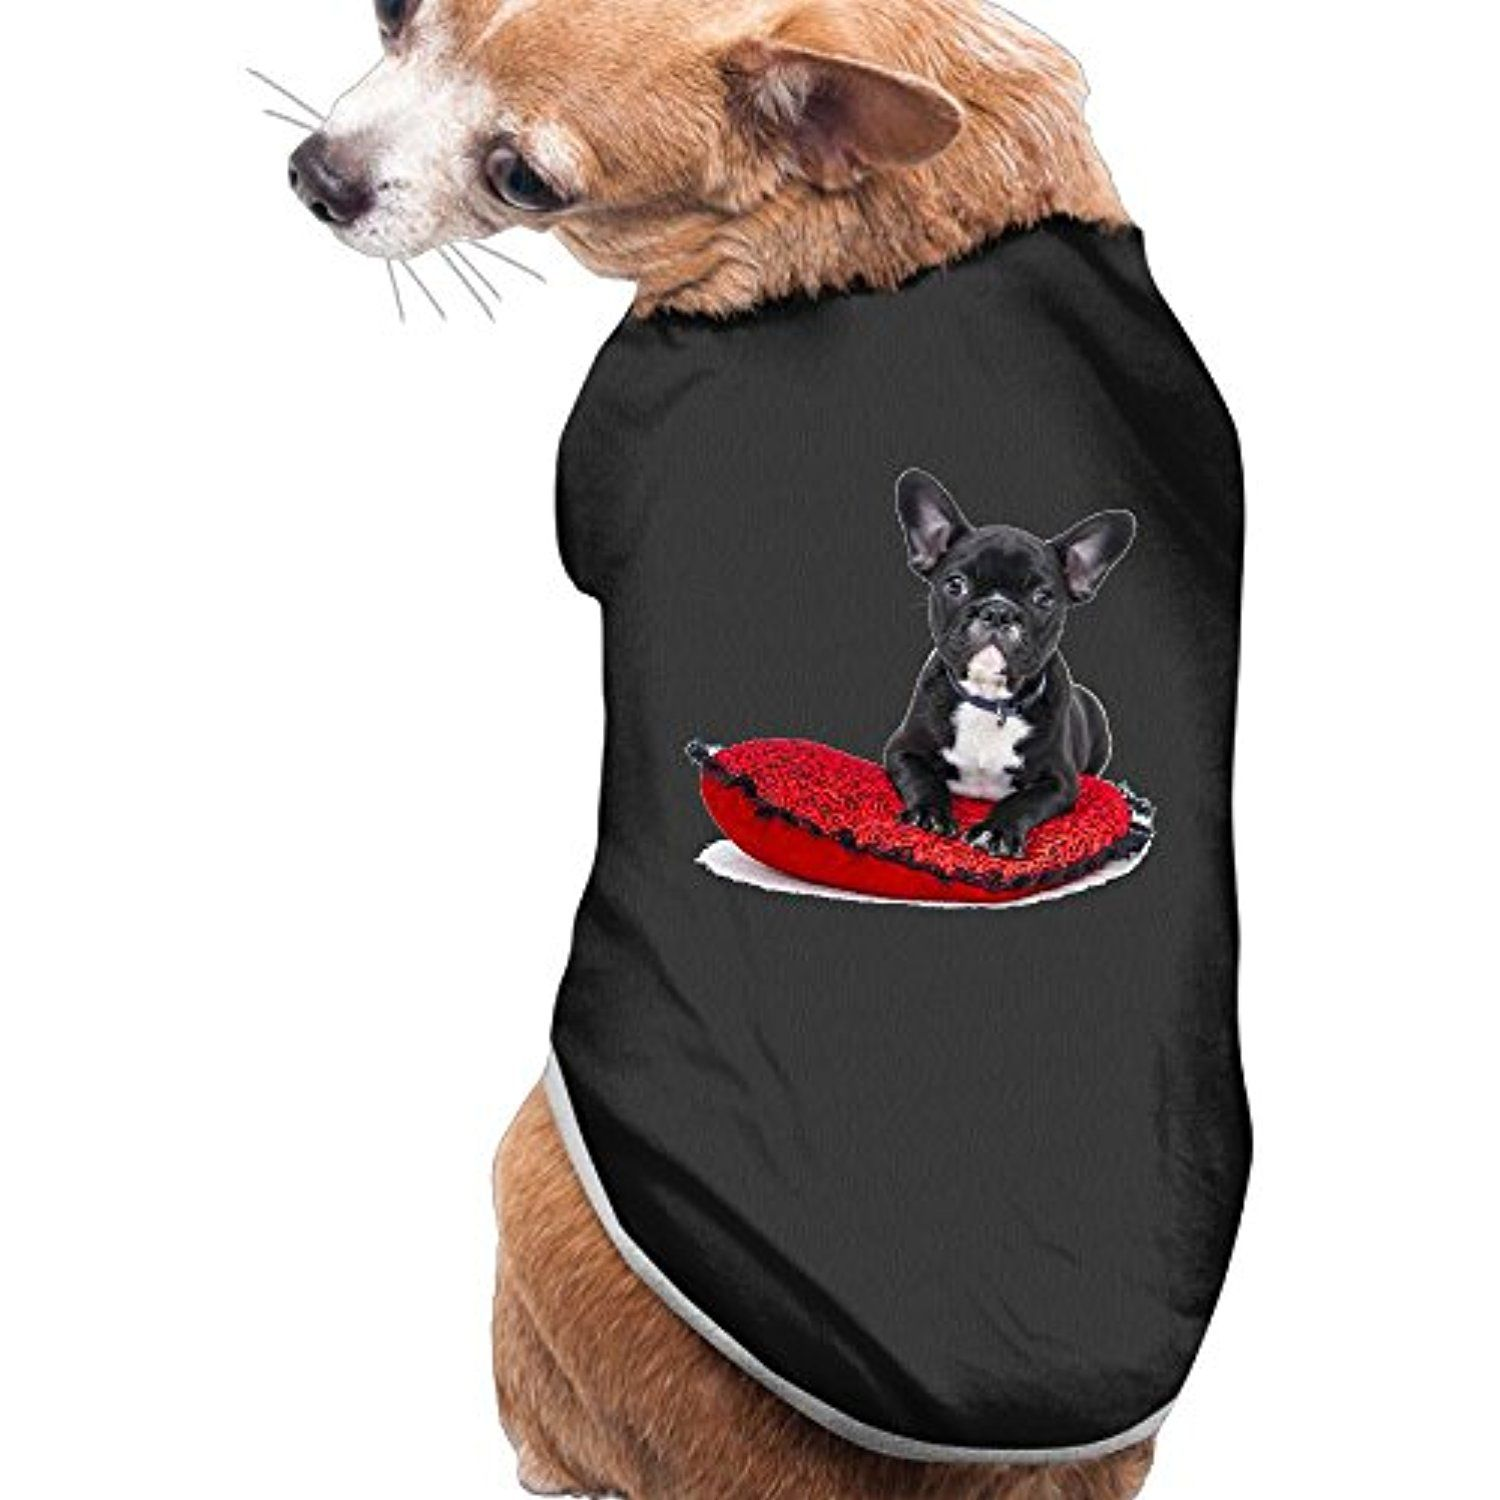 NEW Pets Clothes HALLOWEEN Costumes Personalized Dog,Pillow